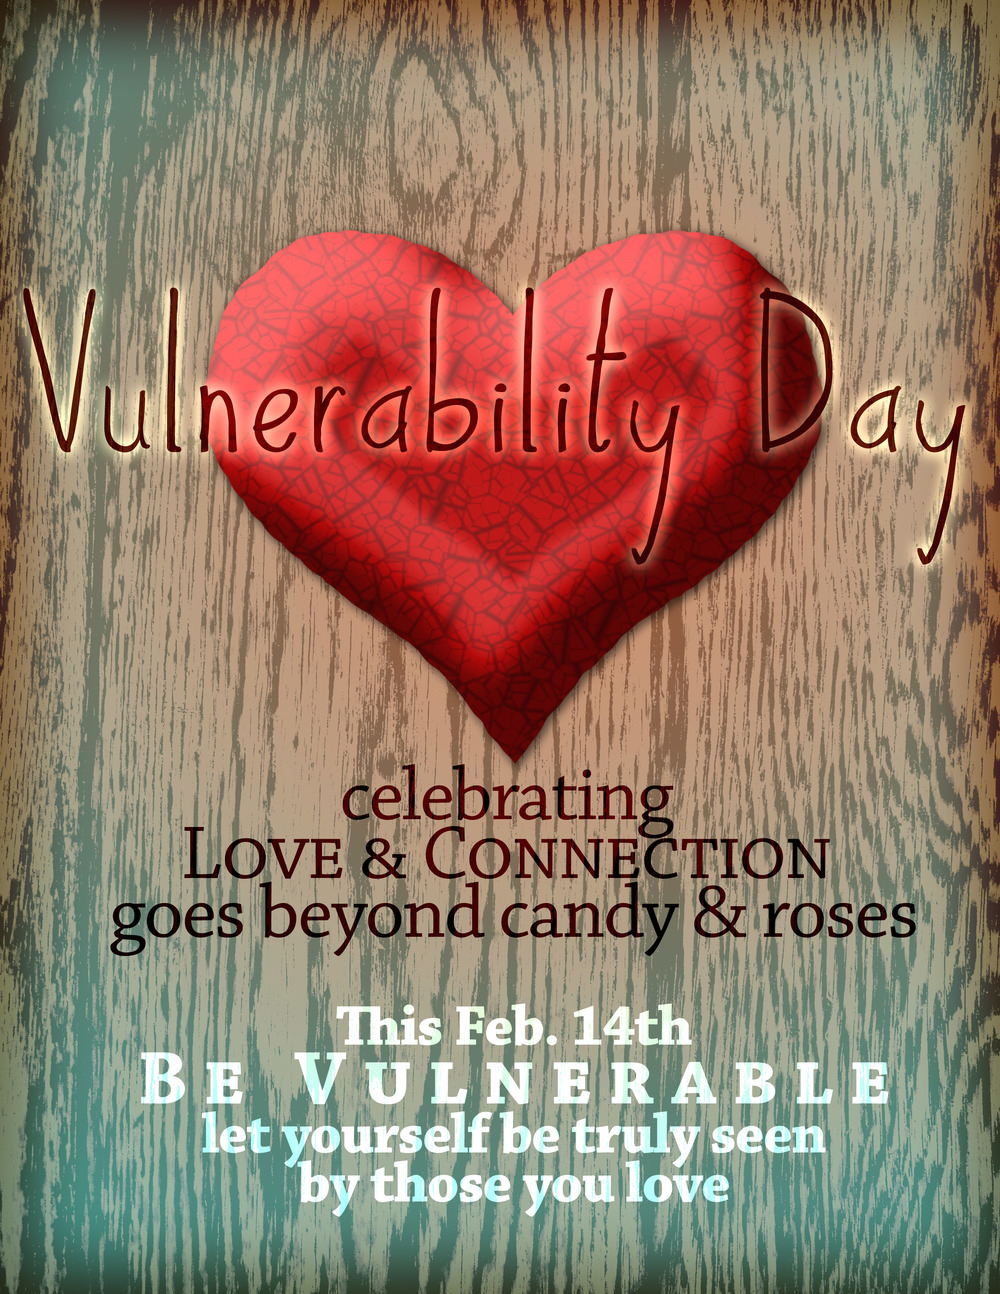 Vulnerability Day. Celebrating love and connection goes beyond candy and roses. This February 14th, be Vulnerable. Let yourself be truly seen by those you love.